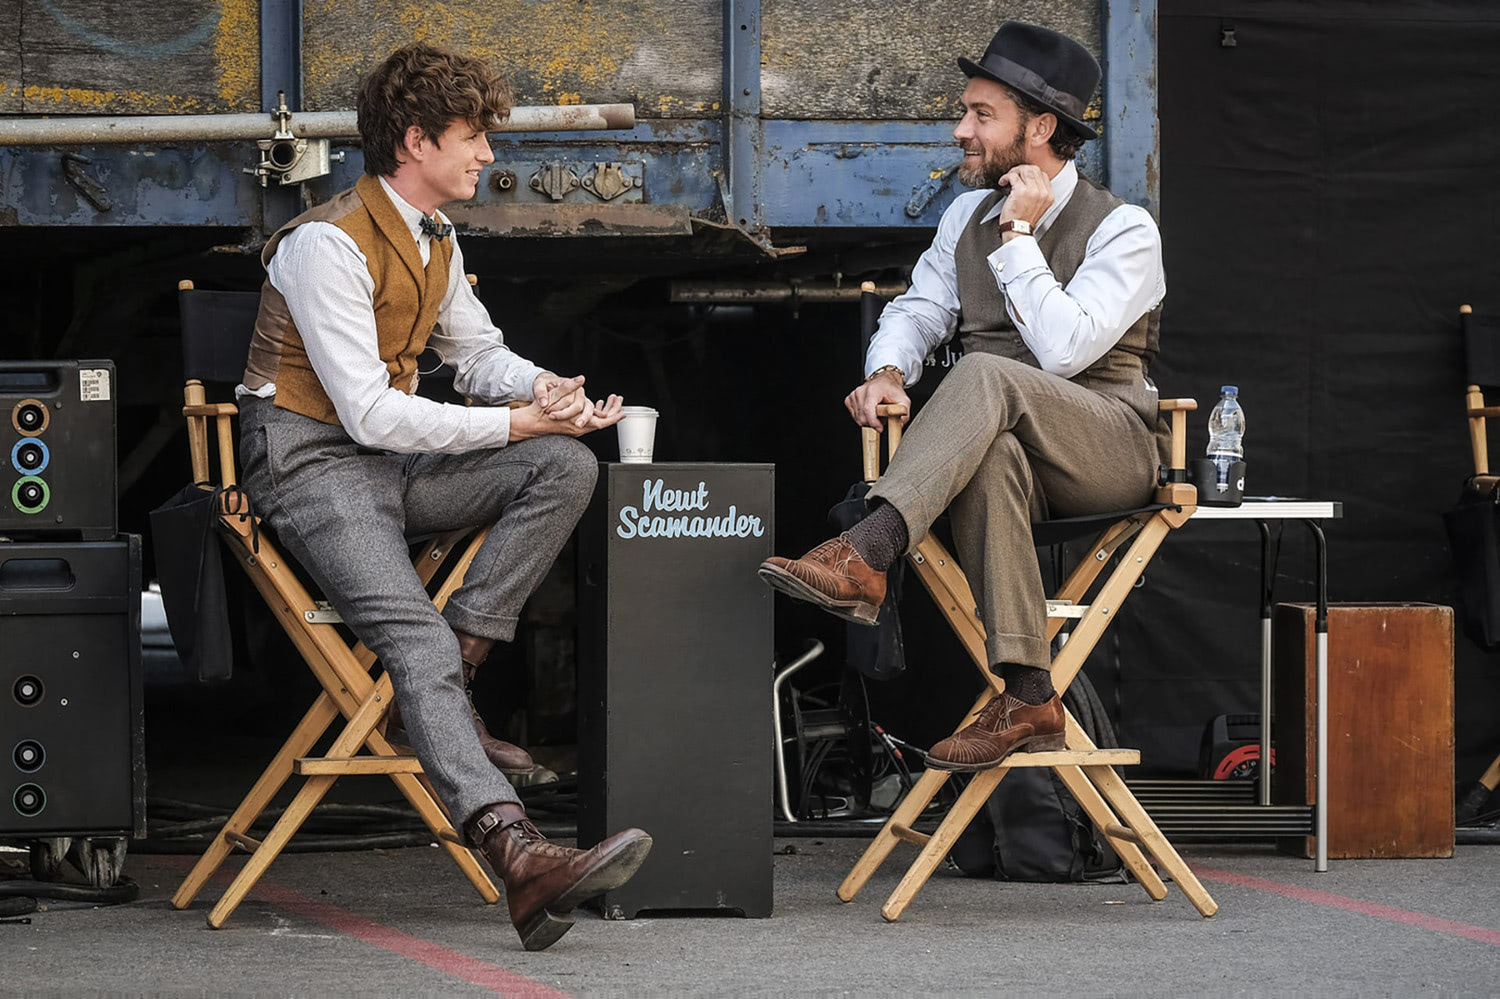 Eddie Redmayne and Jude Law on set